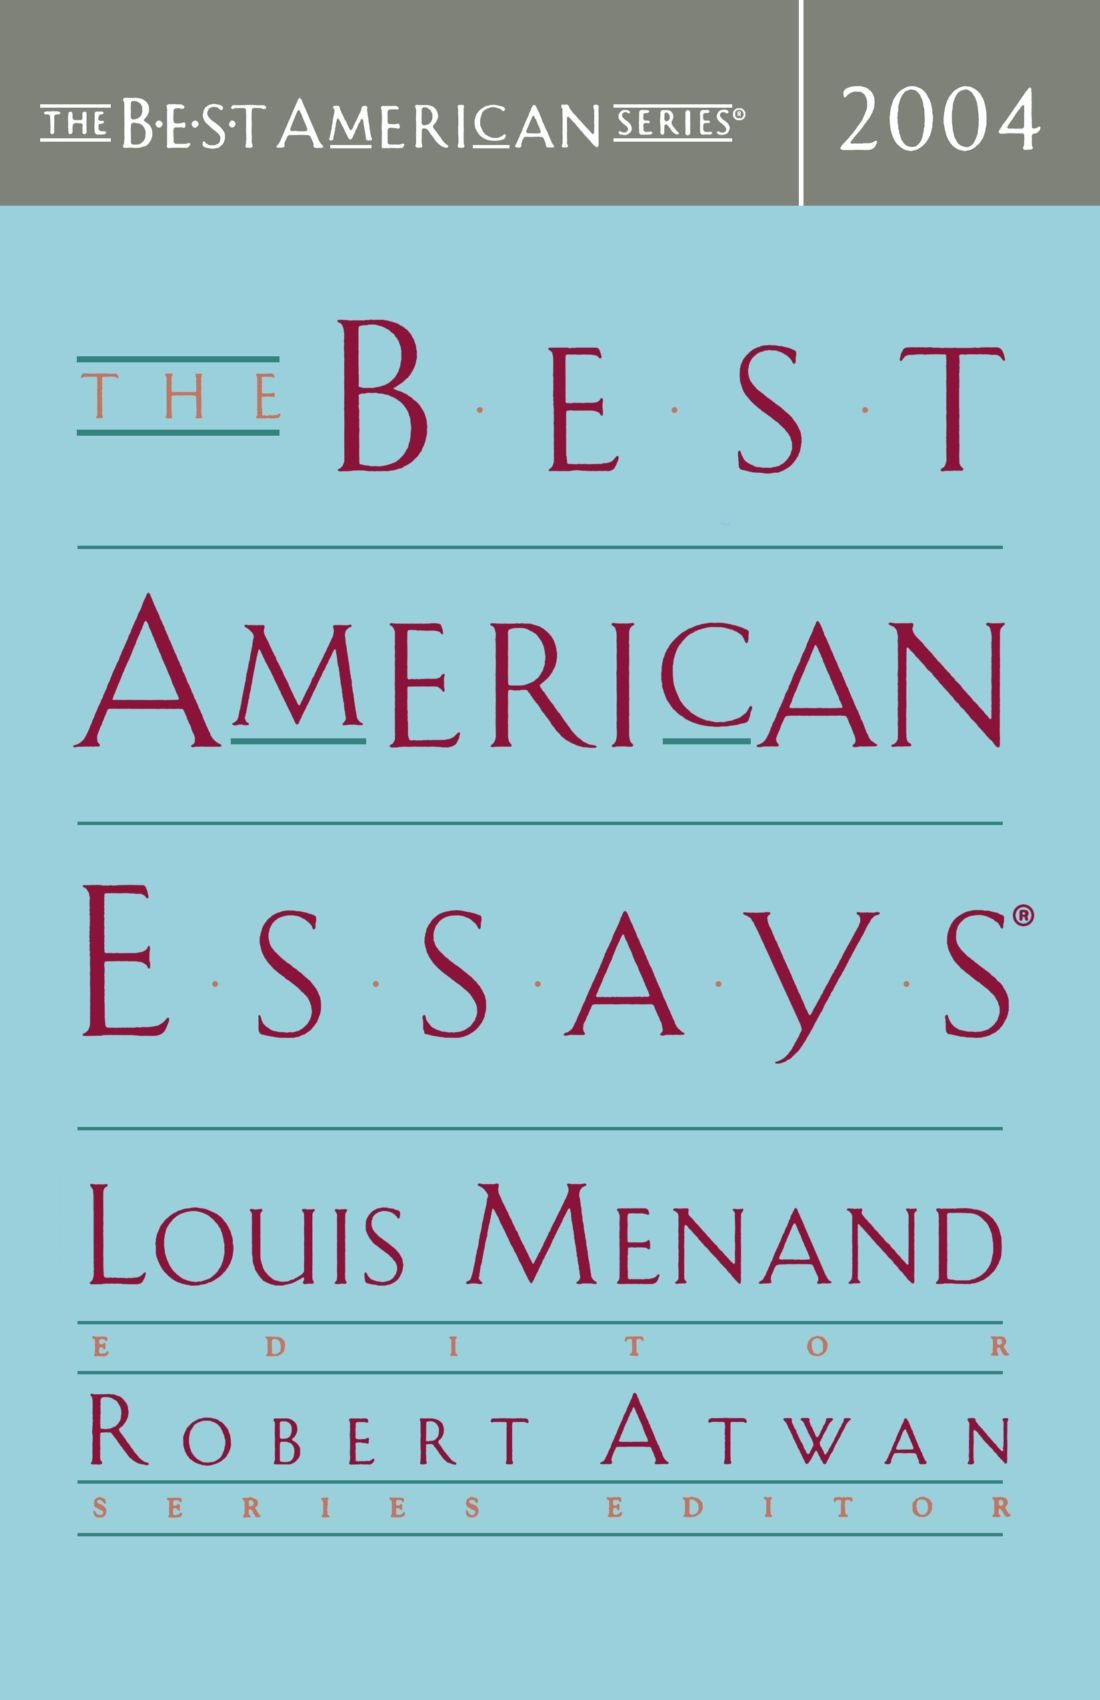 015 Essay Example The Best American Essays Wonderful 2018 List Pdf Download 2017 Free Full